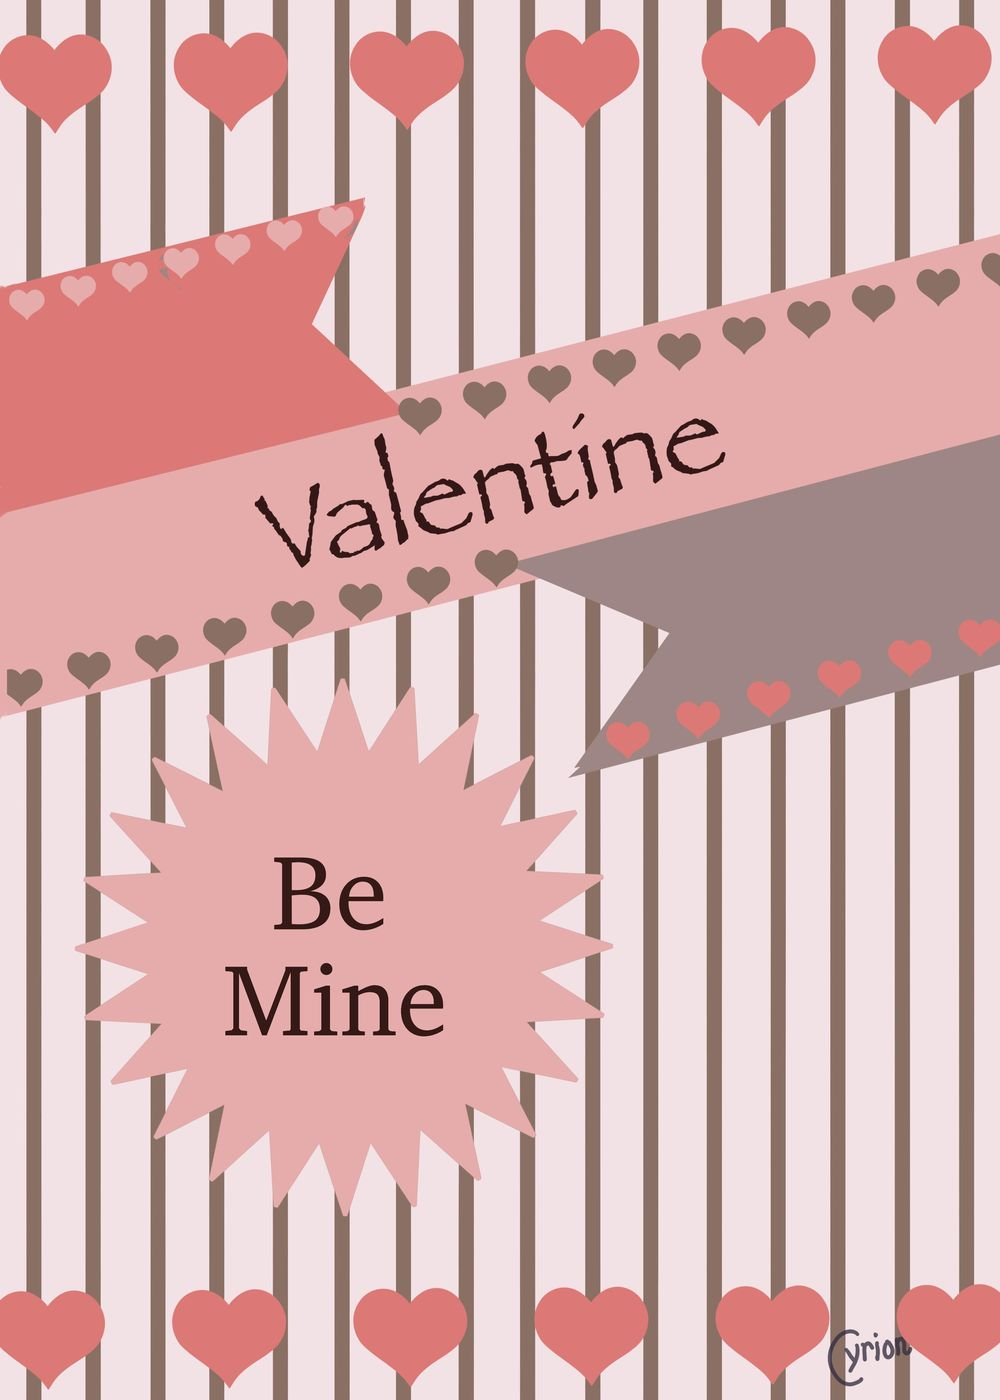 Valentine Cards - image 3 - student project